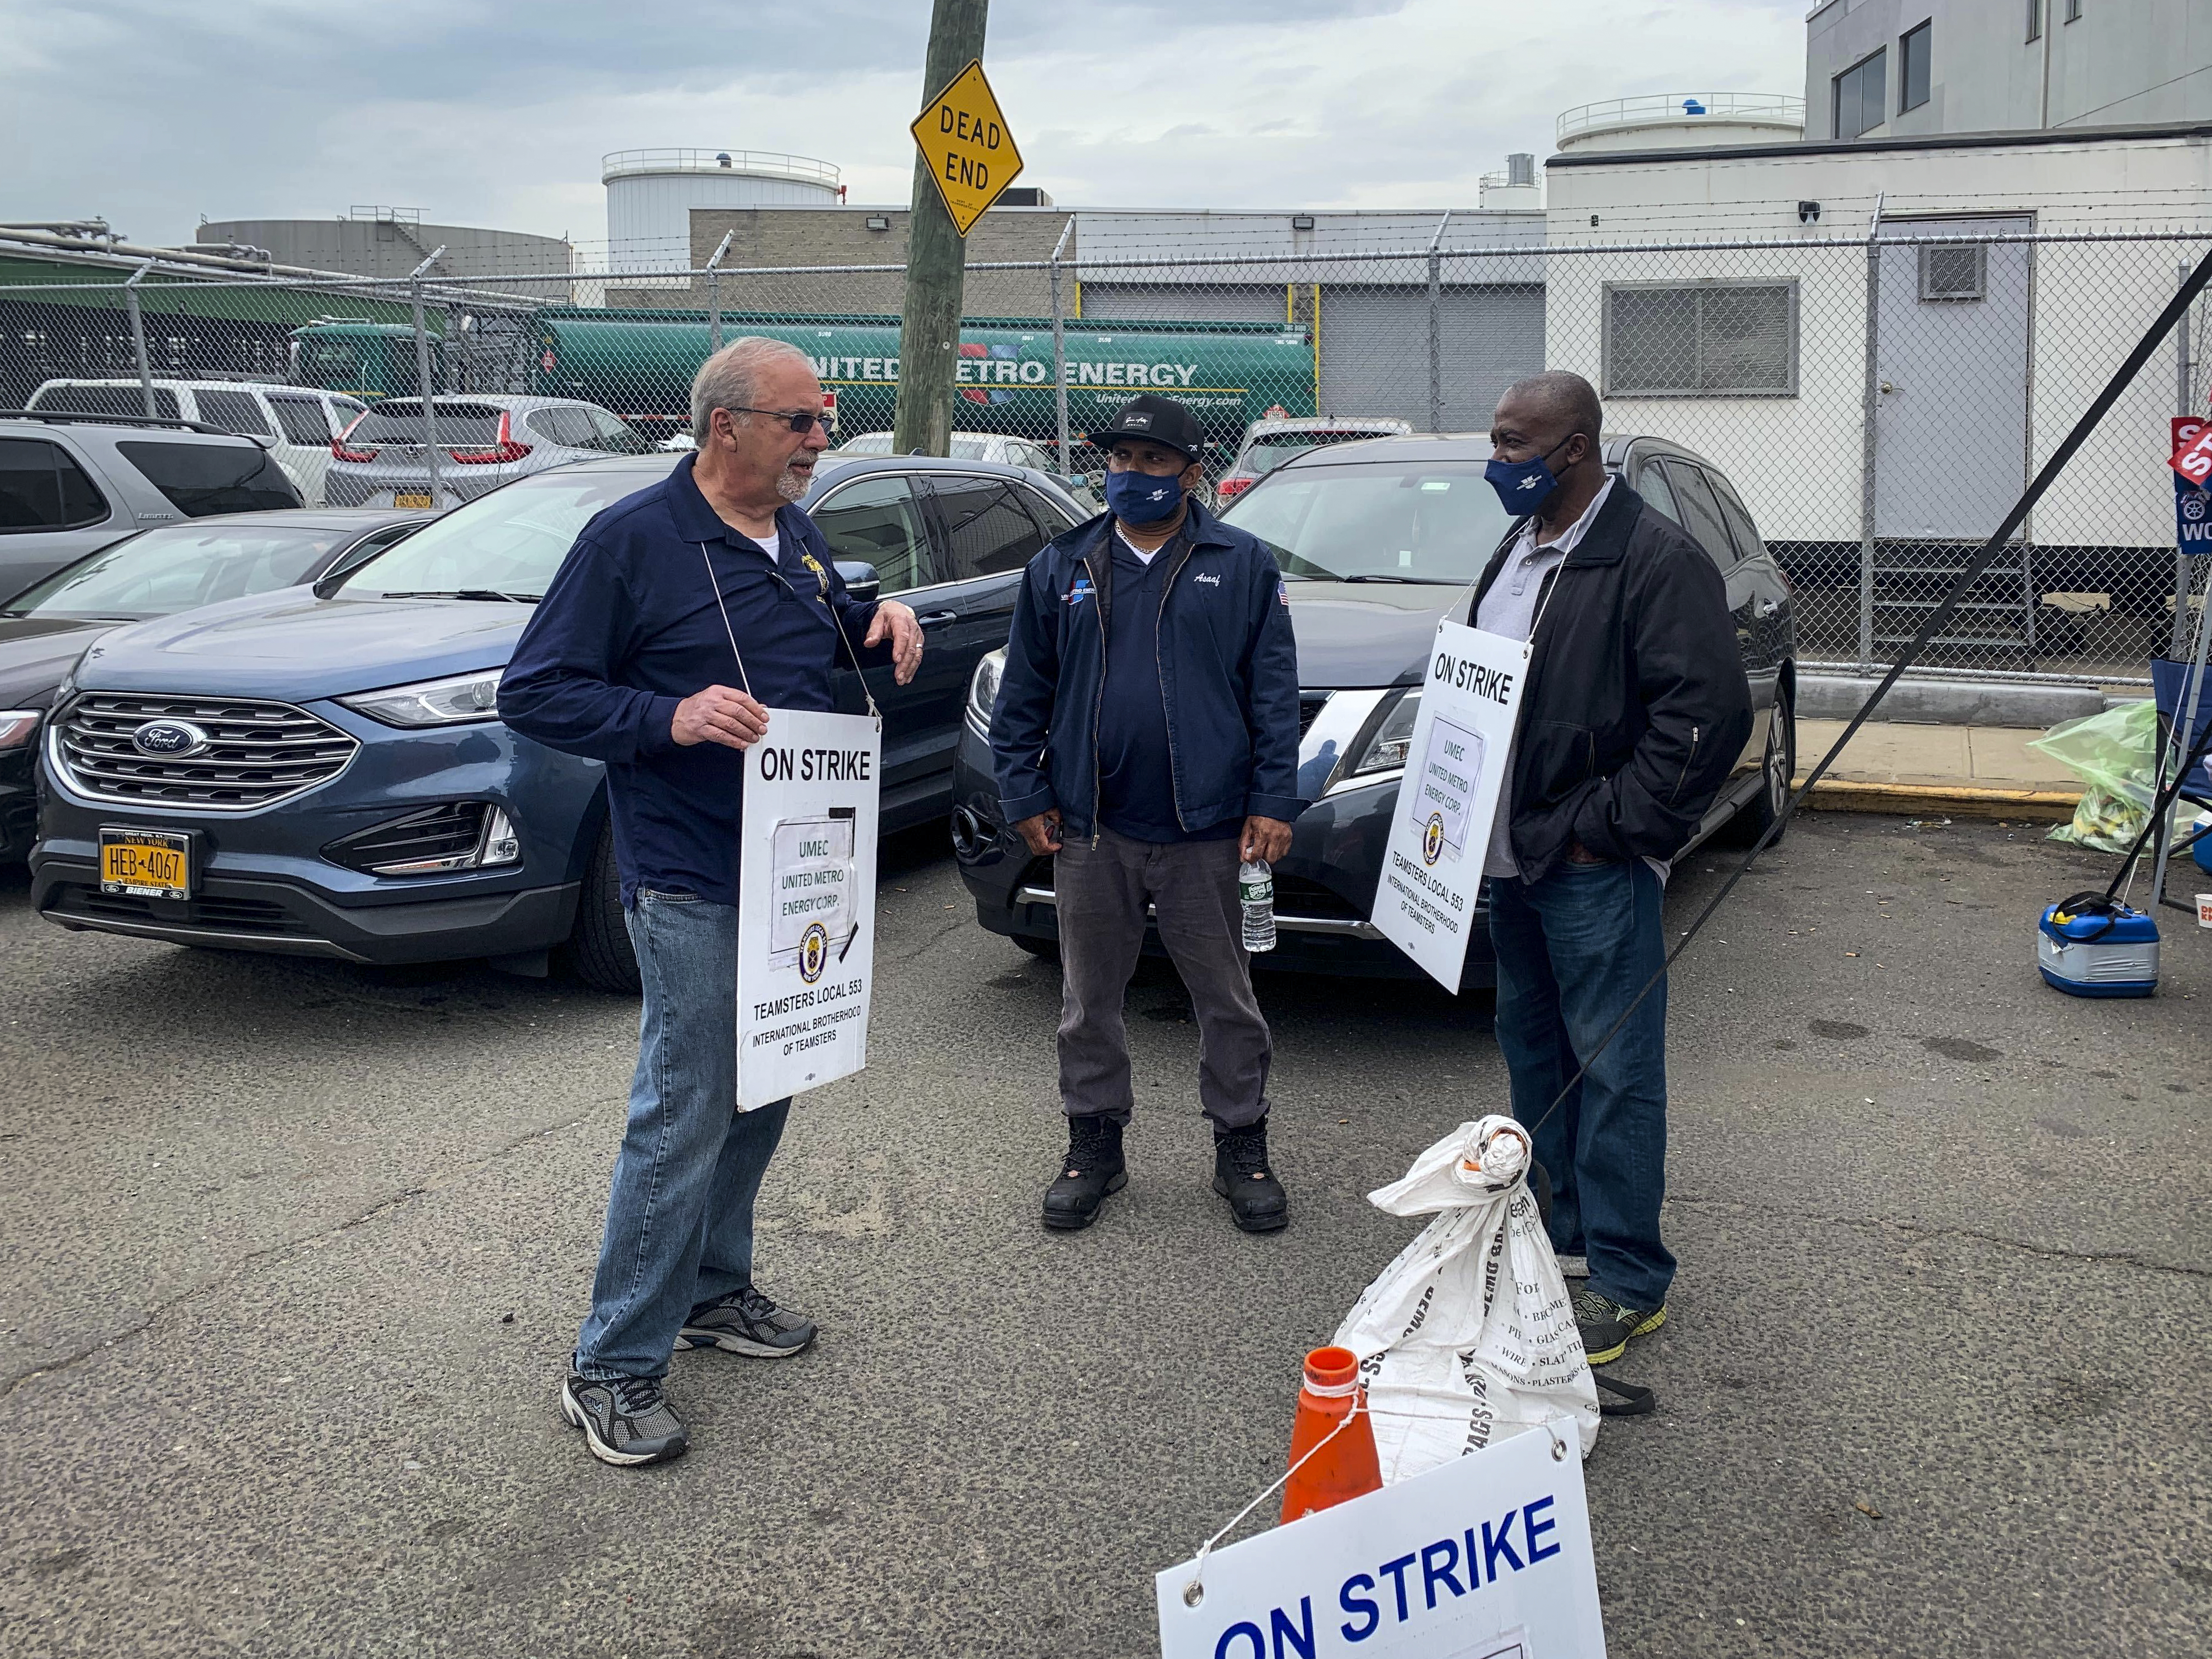 Left to right: Union rep Vic Castellano with Asaaf John and Andre Soleyn at Greenpoint's United Metro Energy worker strike, April 29, 2021.